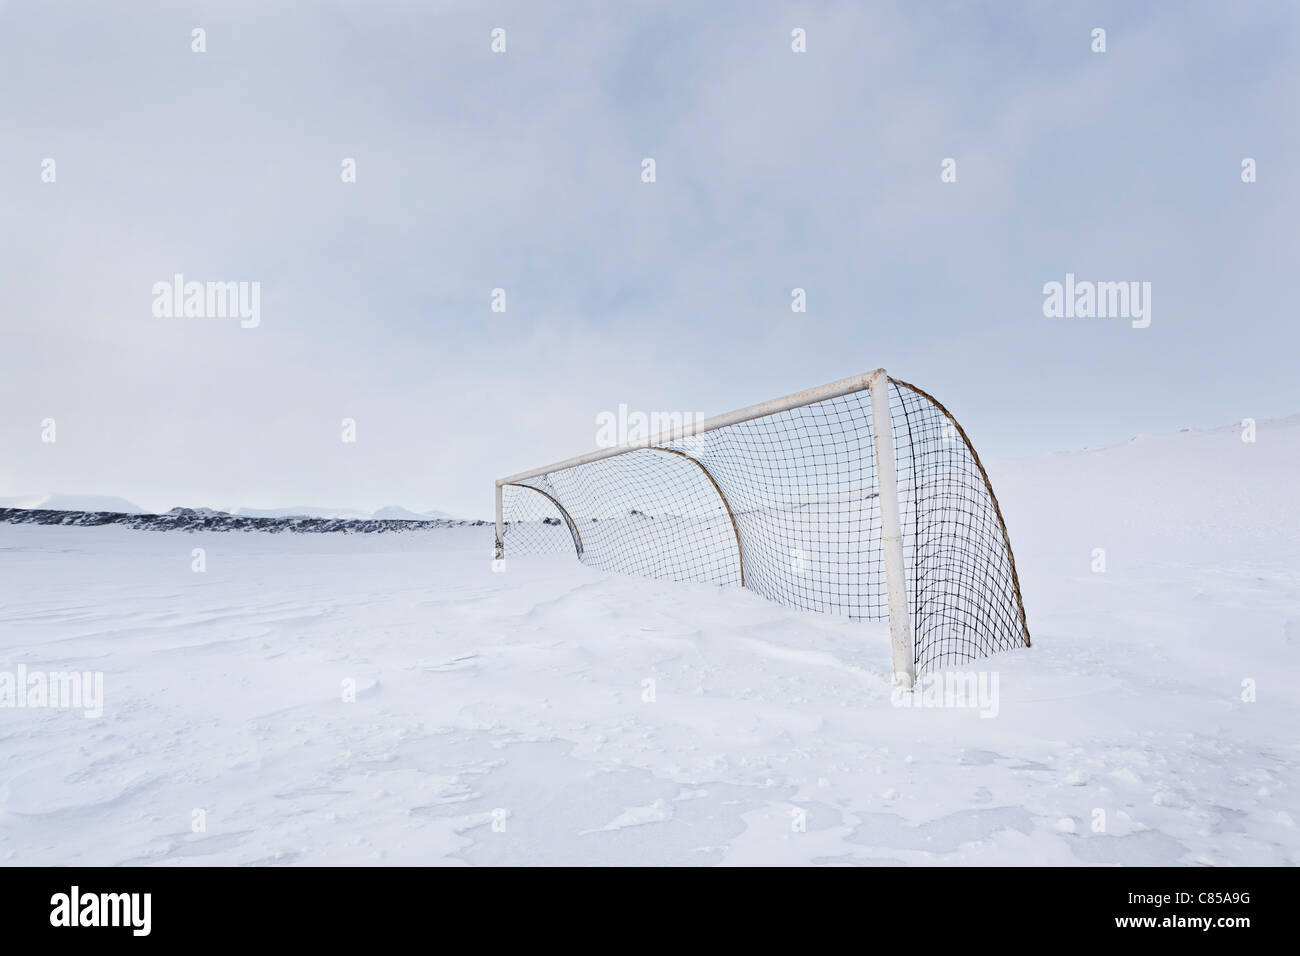 Hockey net in snow-covered field - Stock Image